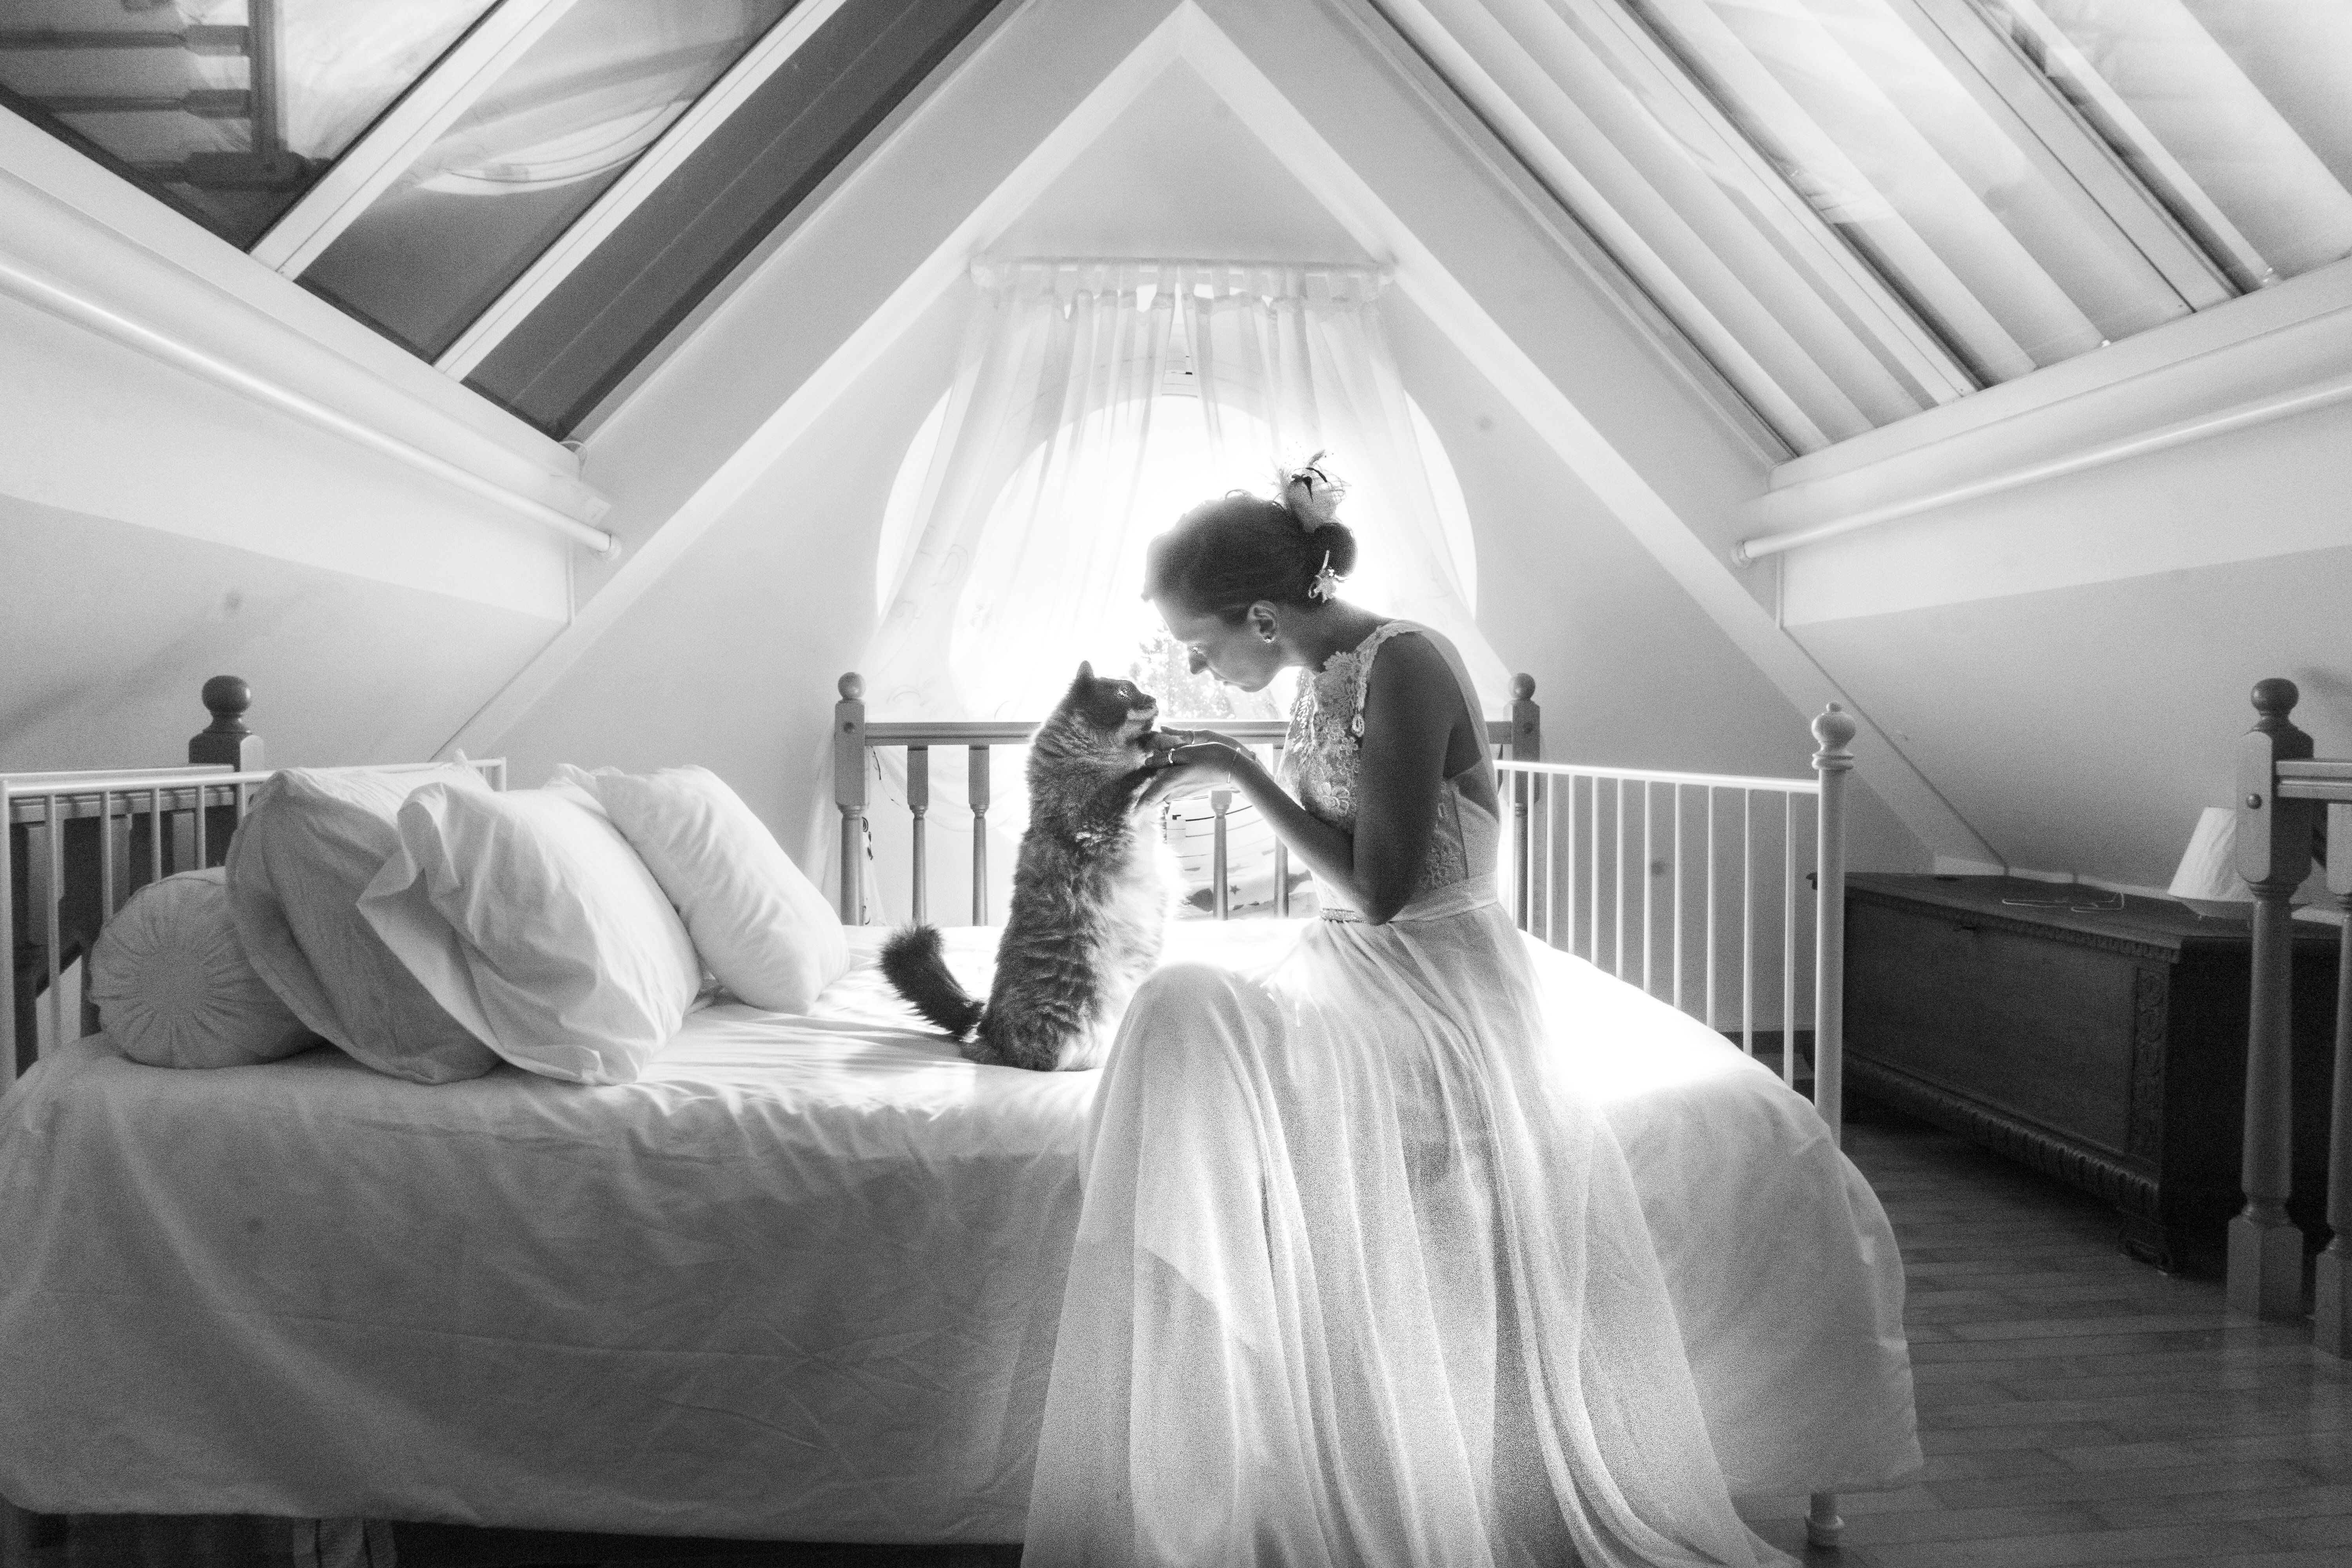 Photog Captures Newlyweds With Their Cats, And The Pics Are Purr-fect